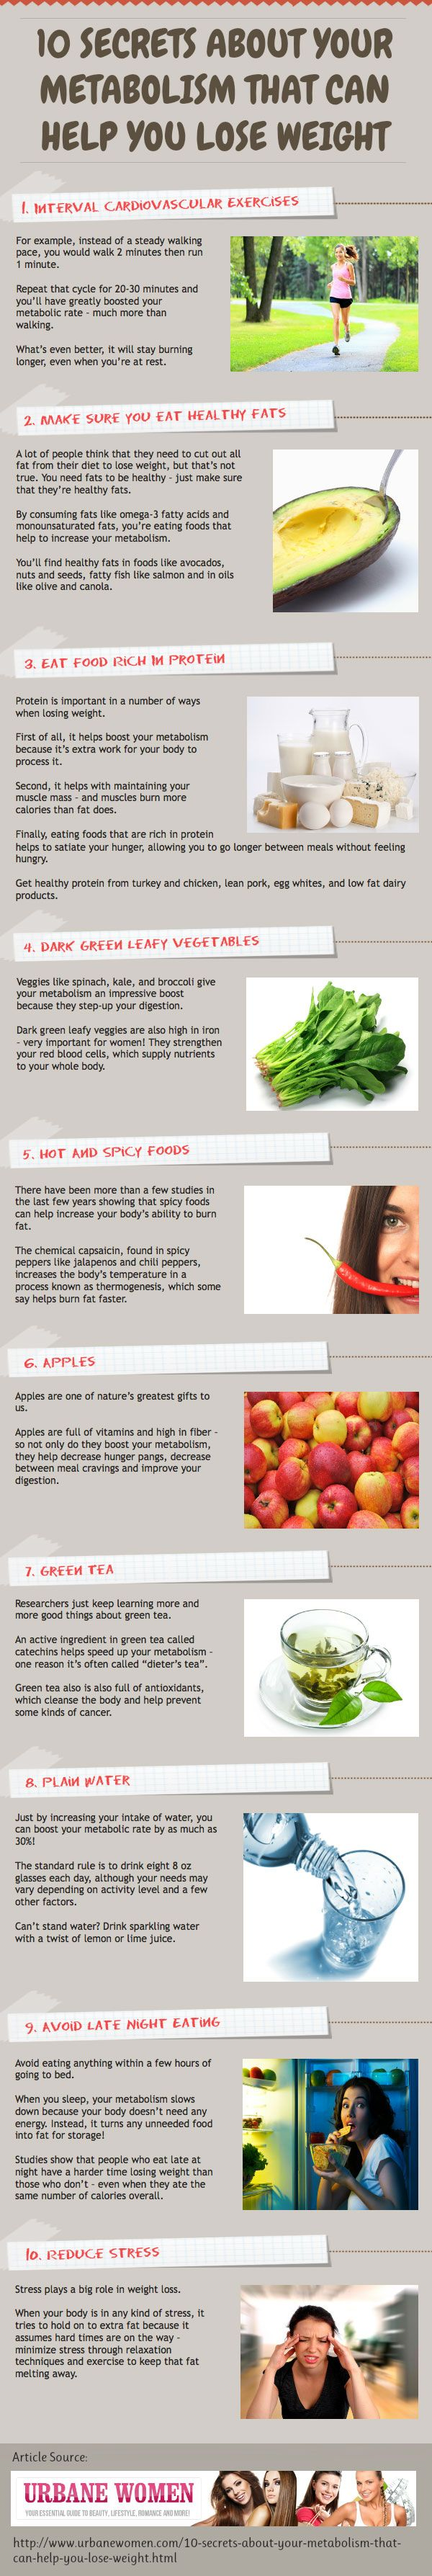 10 Secrets About Your Metabolism....something to think about